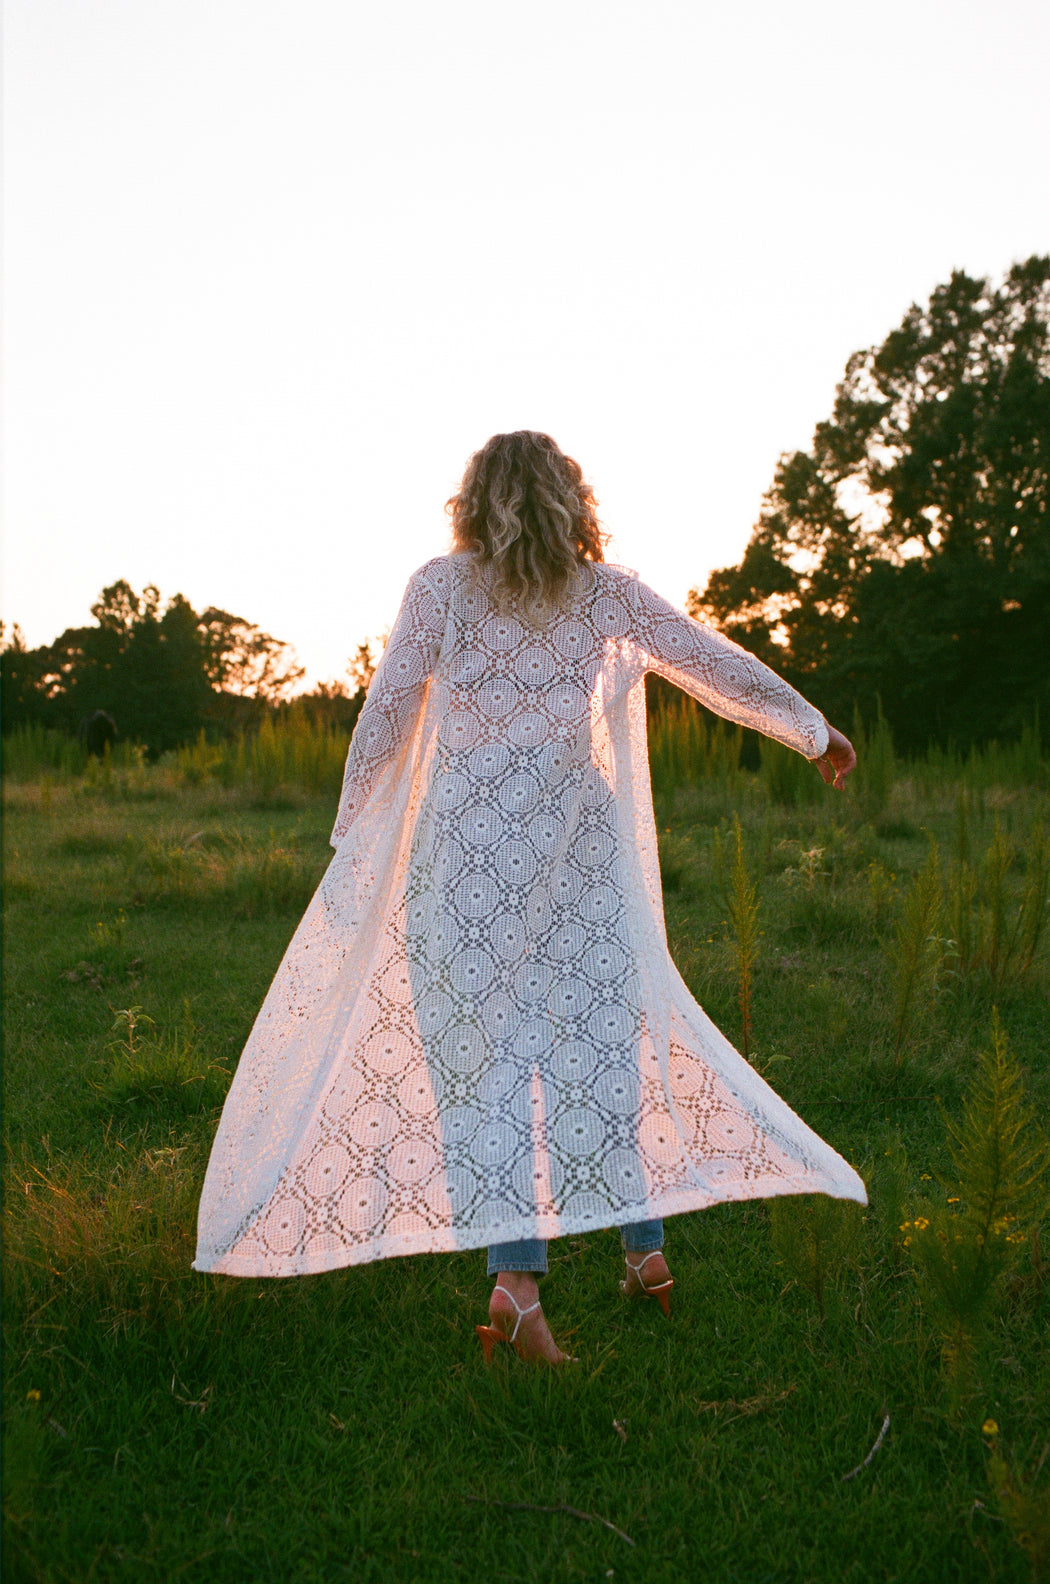 Vintage White Cotton Eyelet Maxi Cover Up (M)